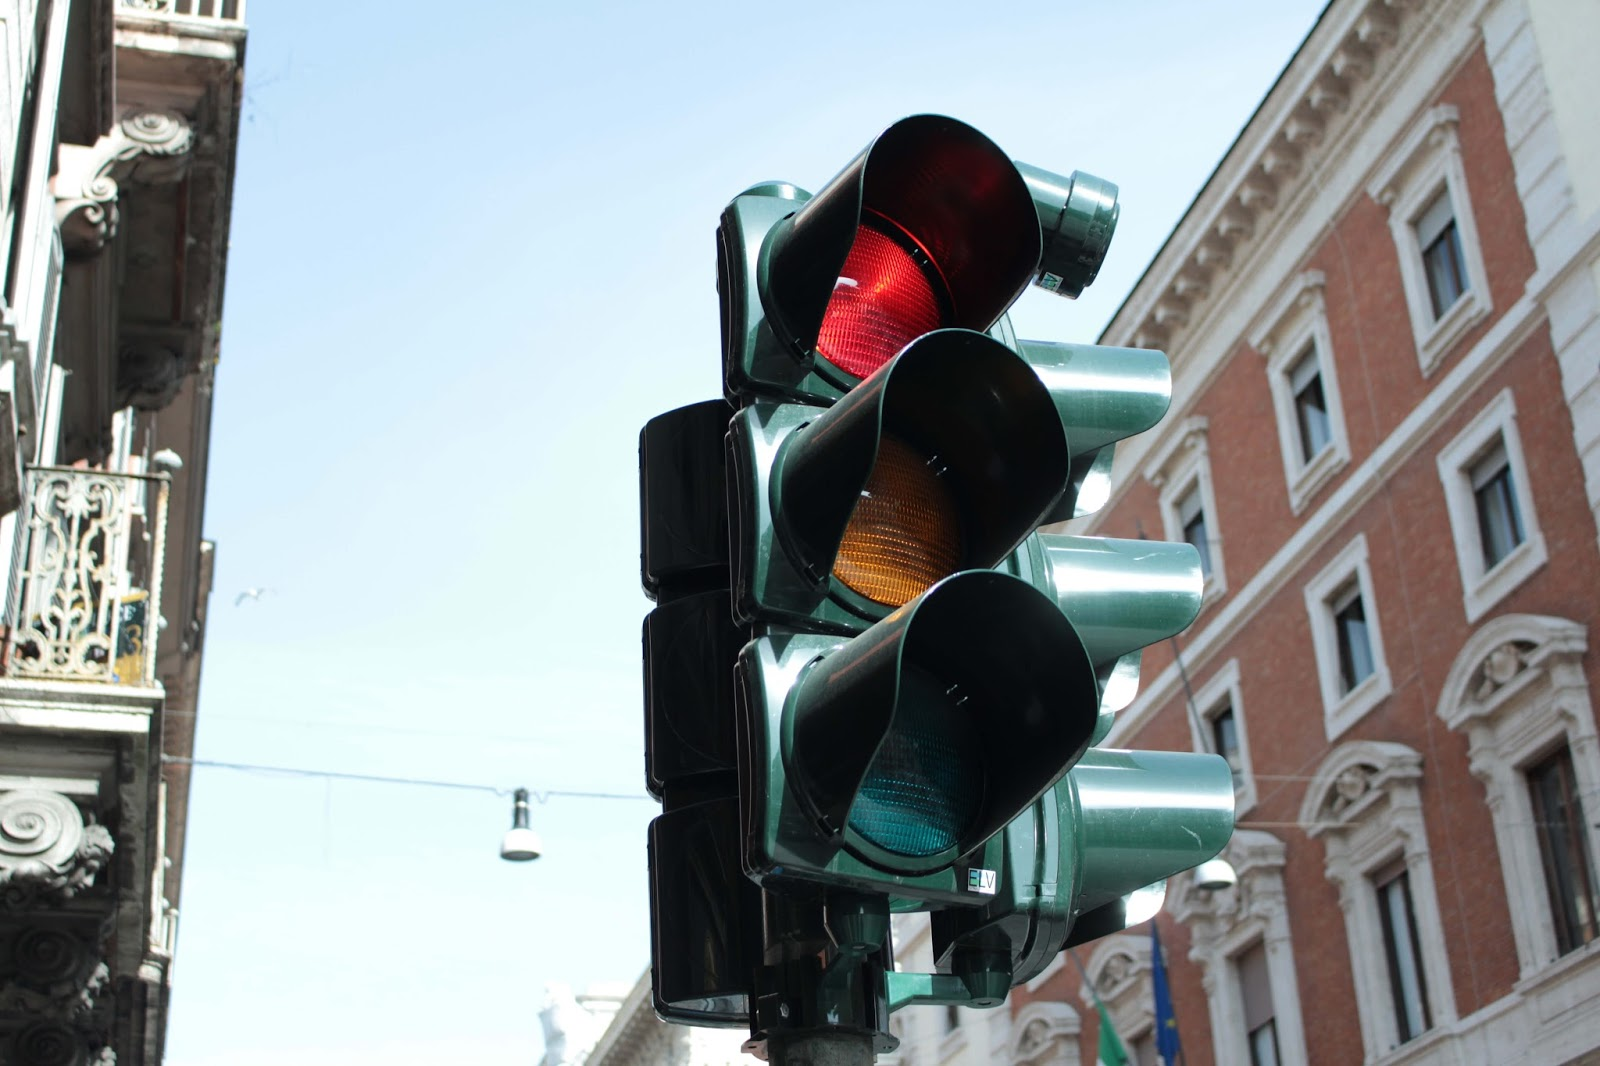 traffic lights in rome daytime